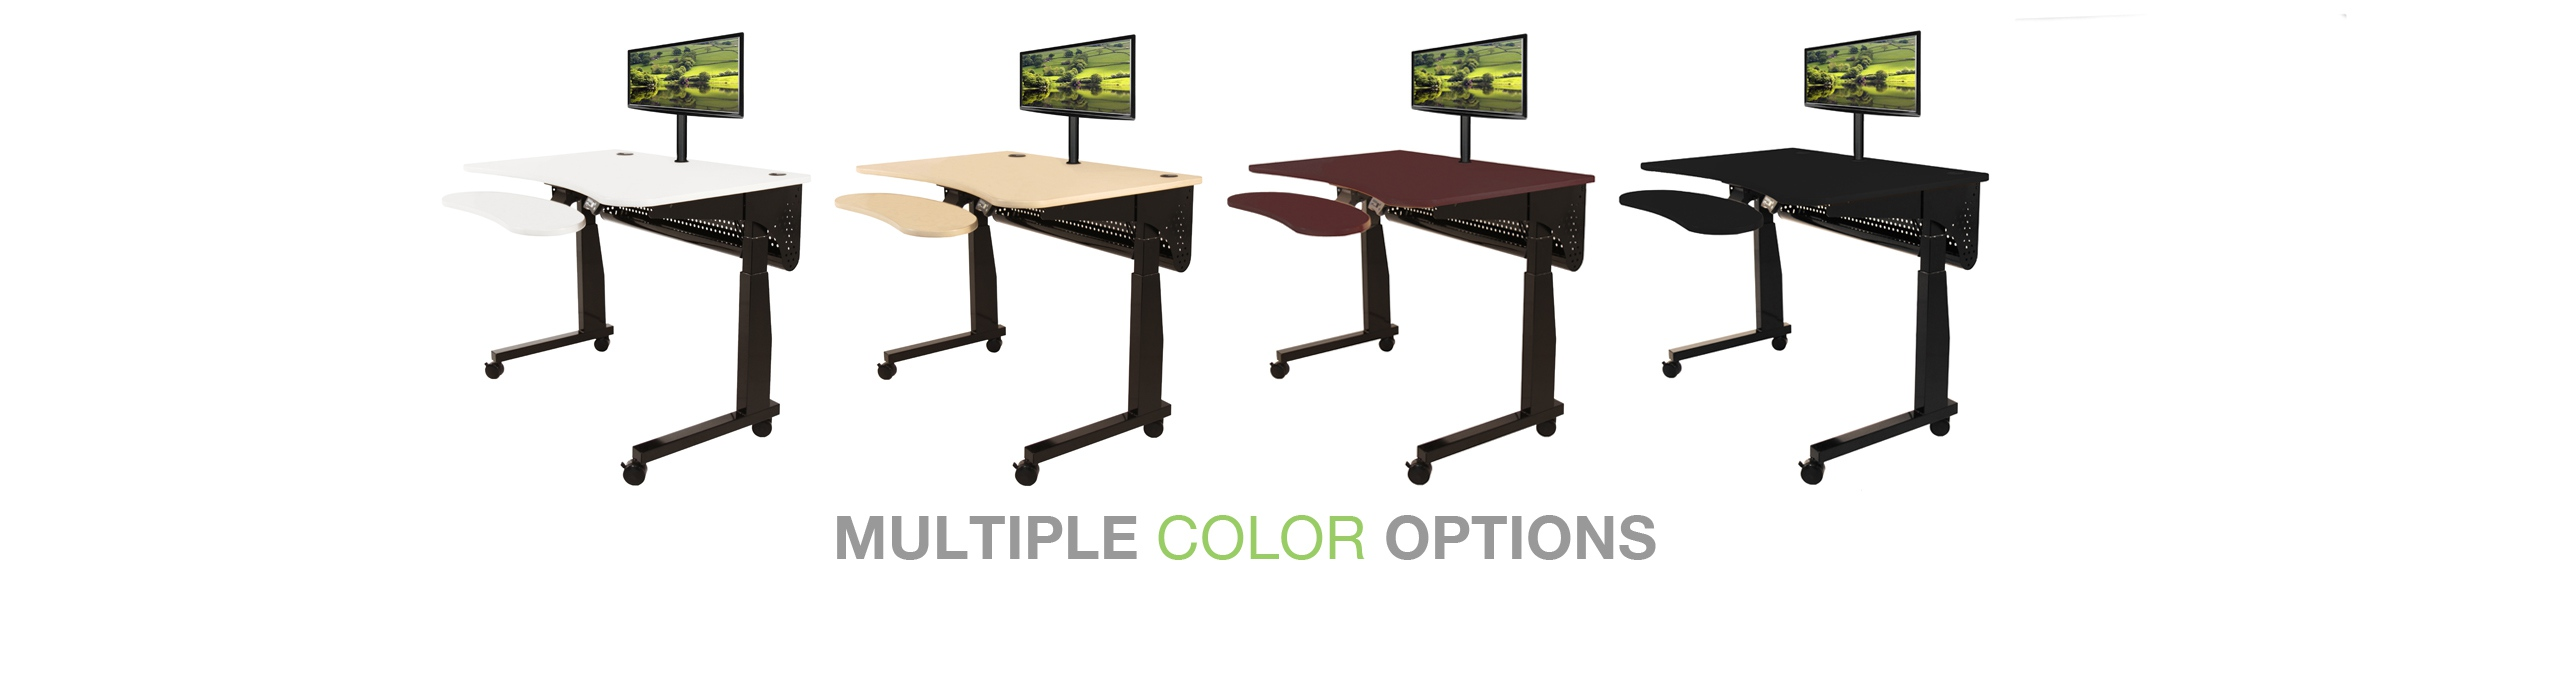 Sit To Stand Adjustable Height Desk And Tables Made In